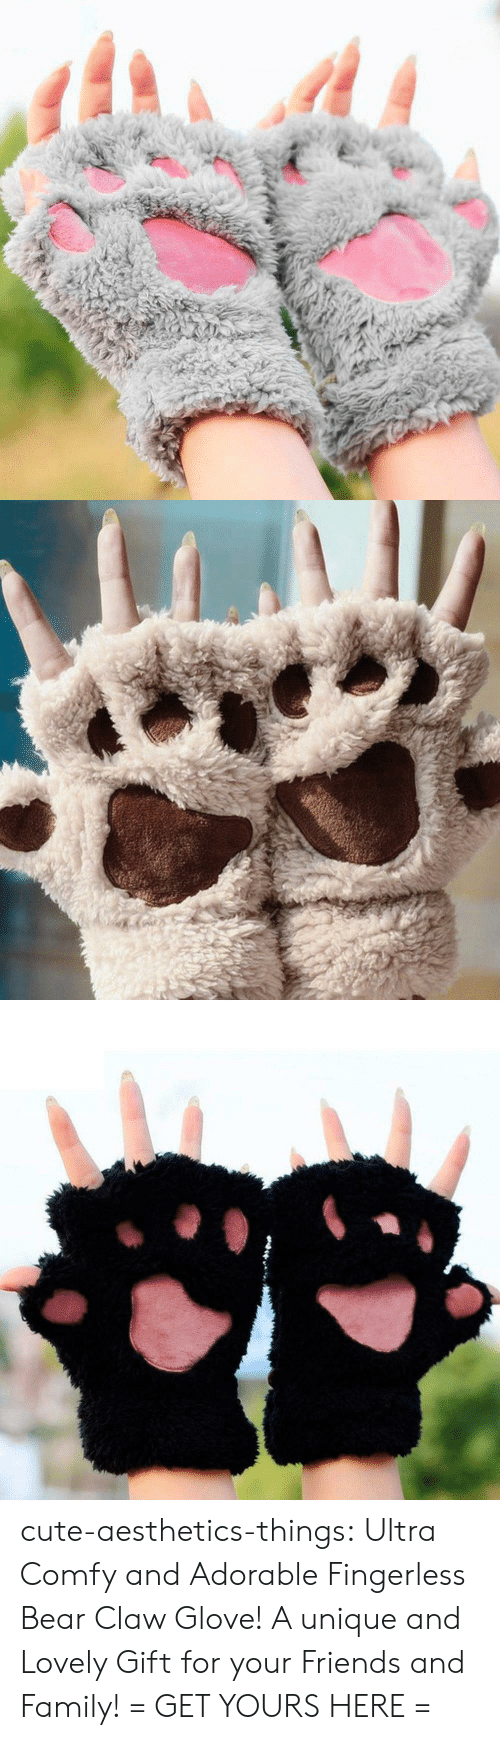 comfy: cute-aesthetics-things: Ultra Comfy and Adorable Fingerless Bear Claw Glove! A unique and Lovely Gift for your Friends and Family! = GET YOURS HERE =